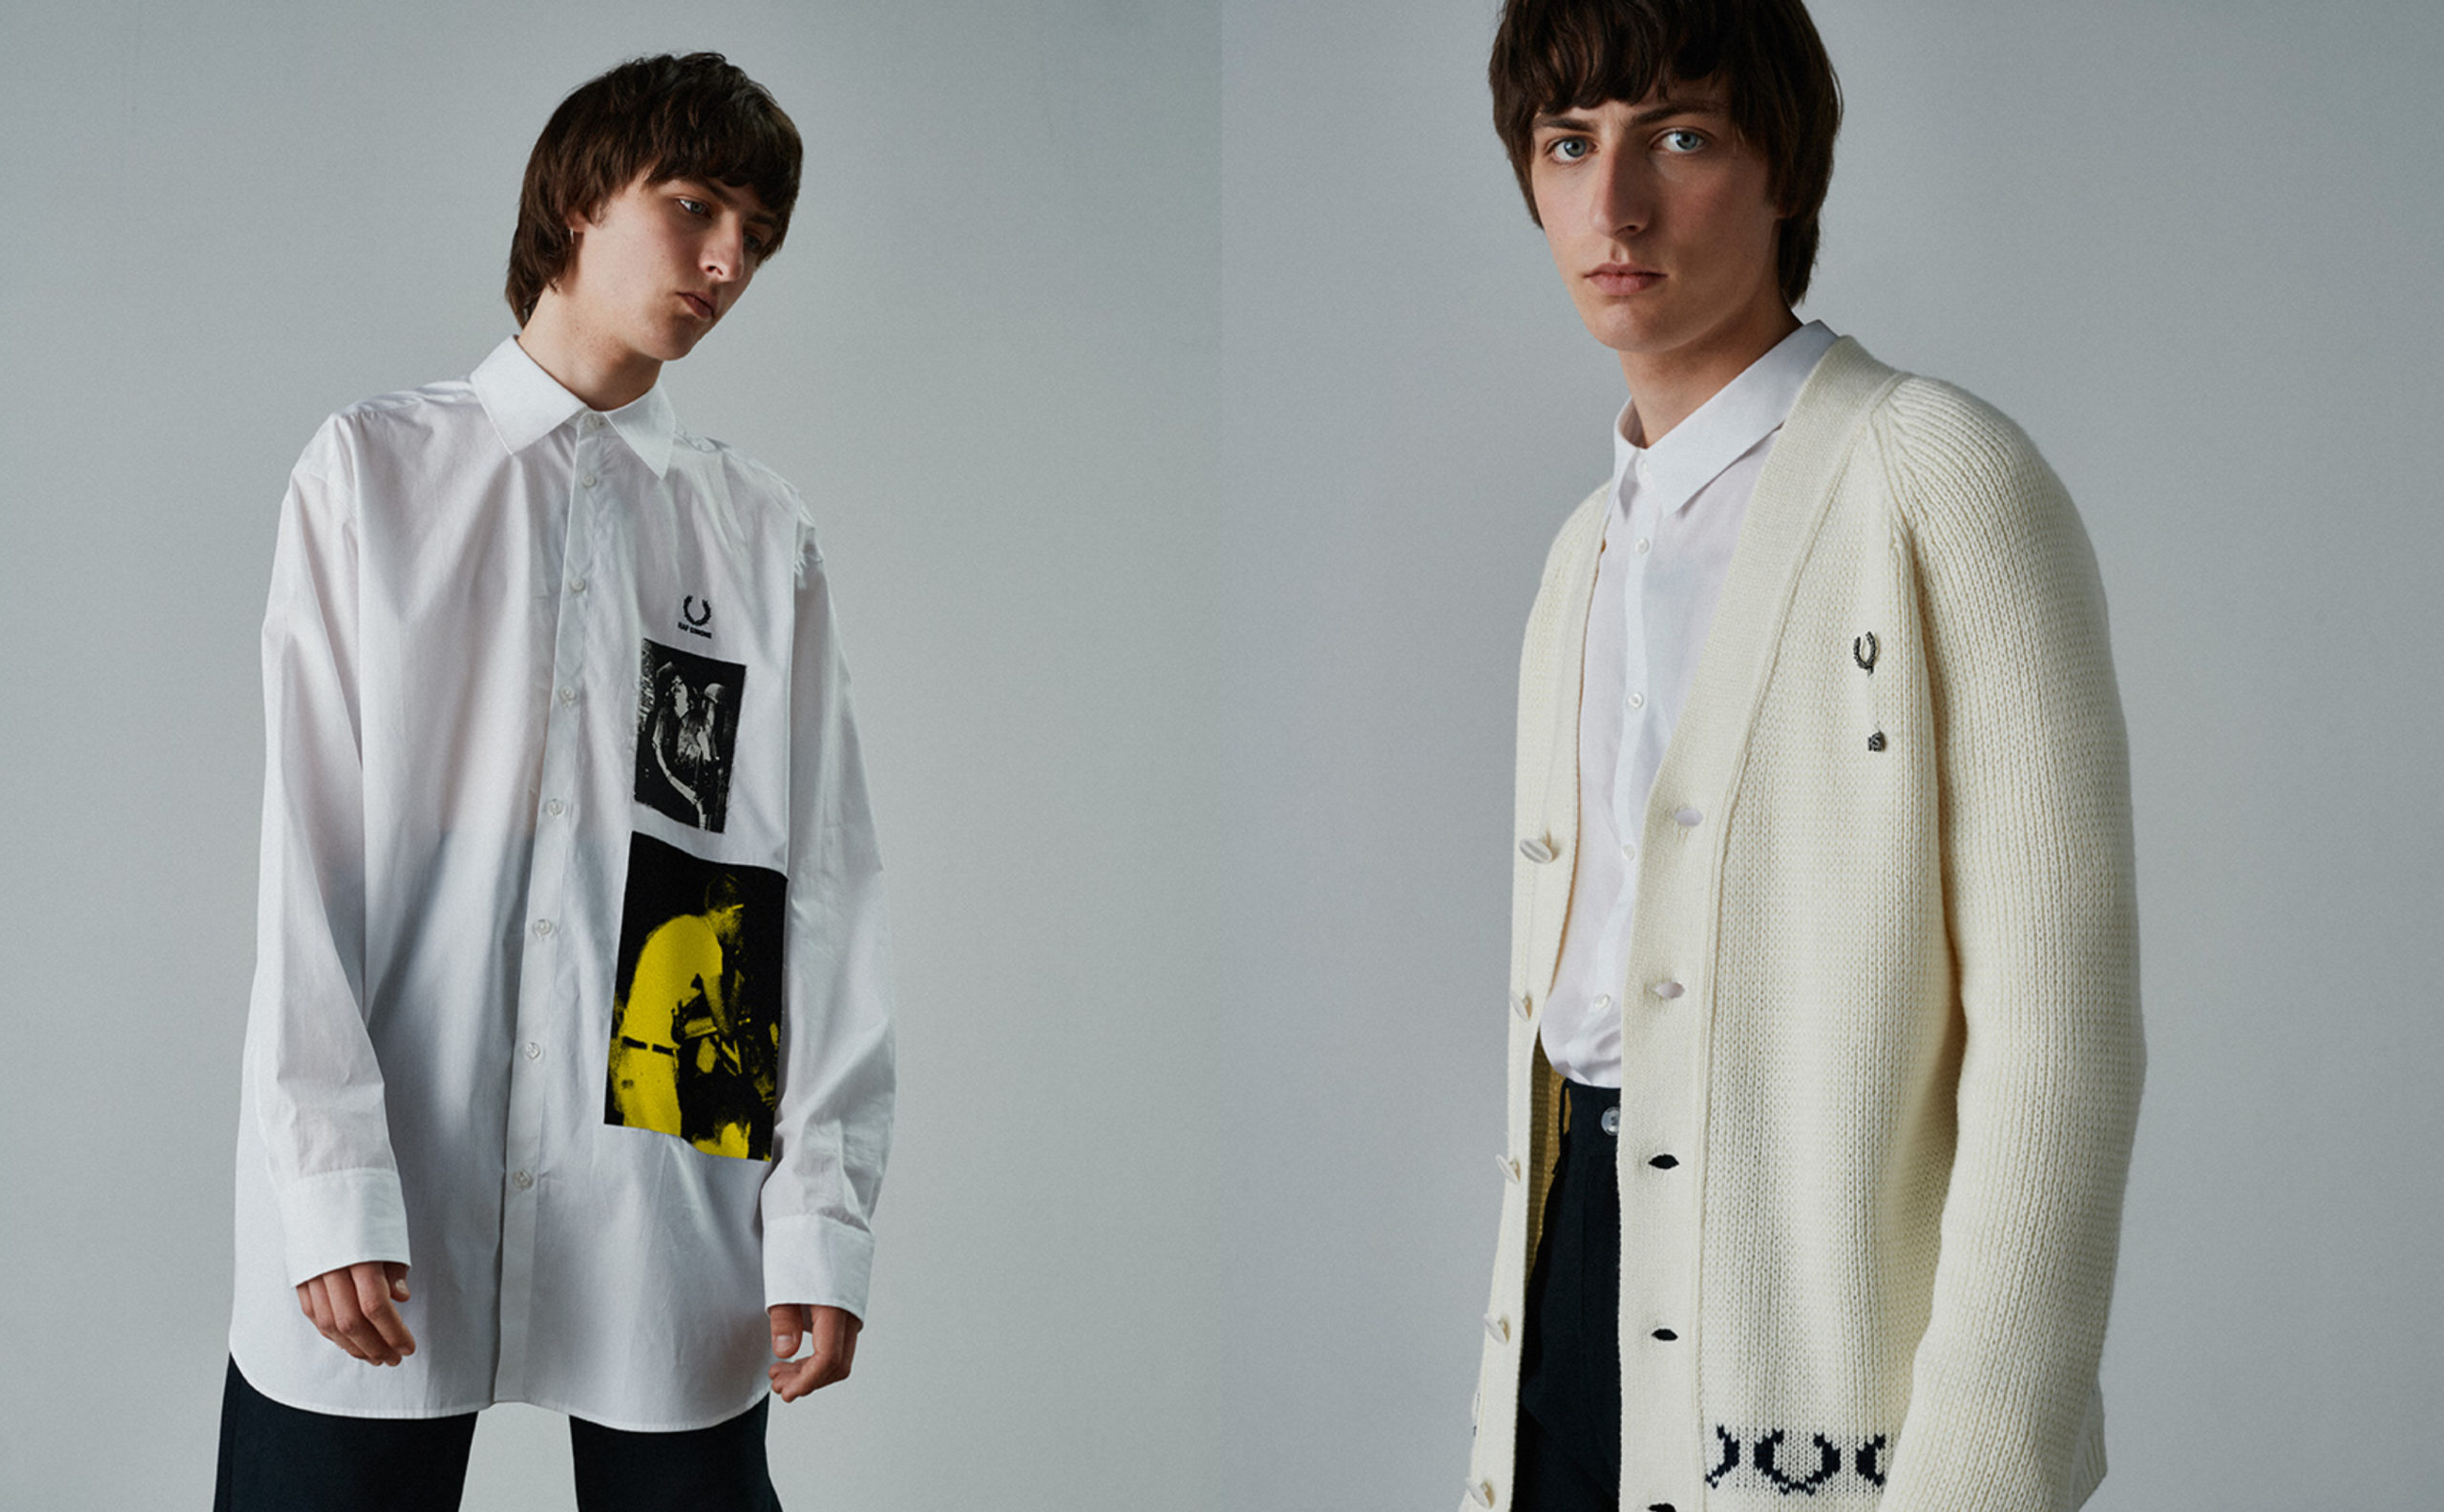 Raf Simons Captures the Energy of Iconic London Venue with Fred Perry